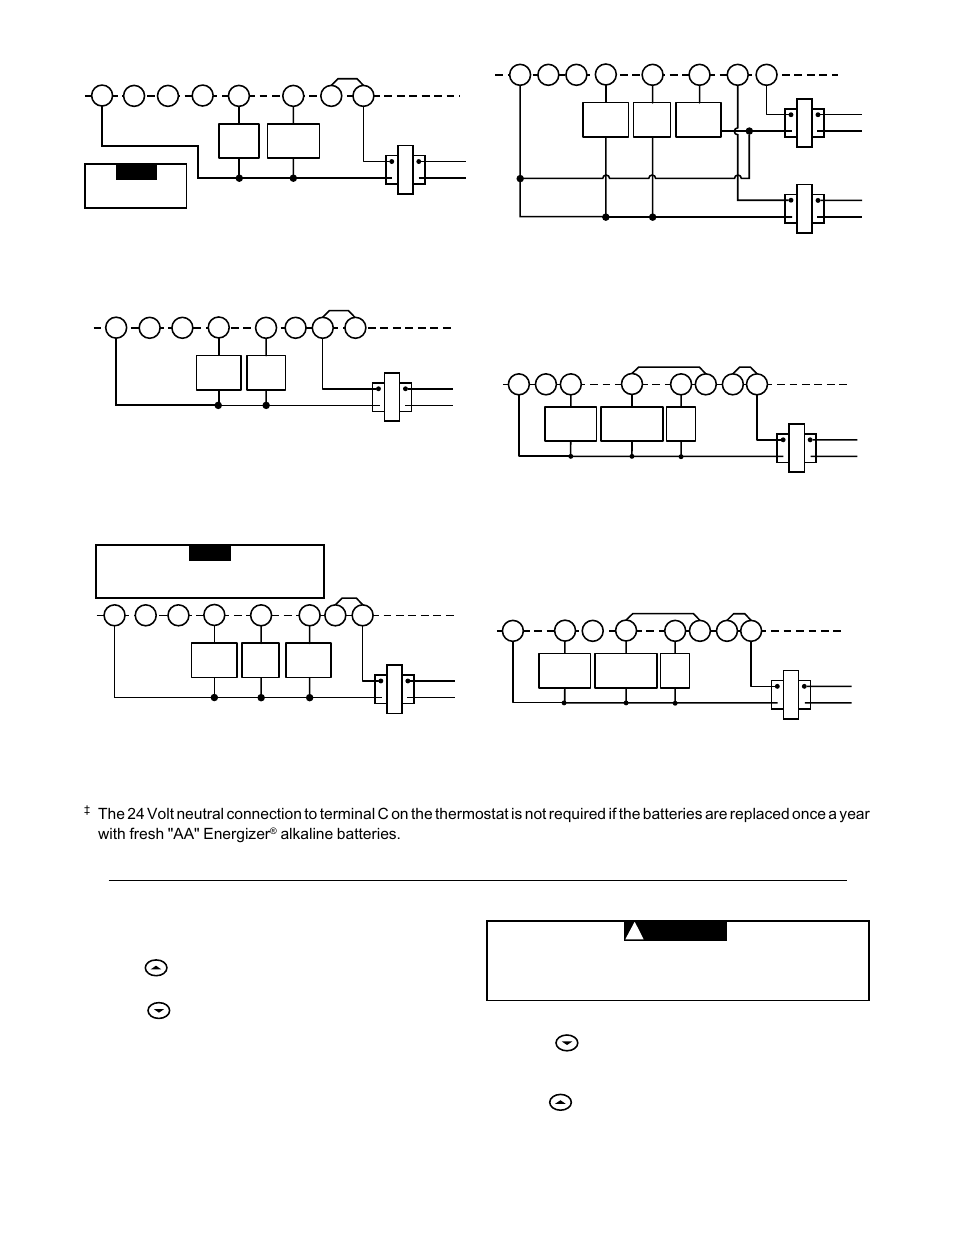 white rodgers 1f86 344 page3 heating system, cooling system, caution white rodgers 1f86 344 white rodgers wiring diagrams at soozxer.org